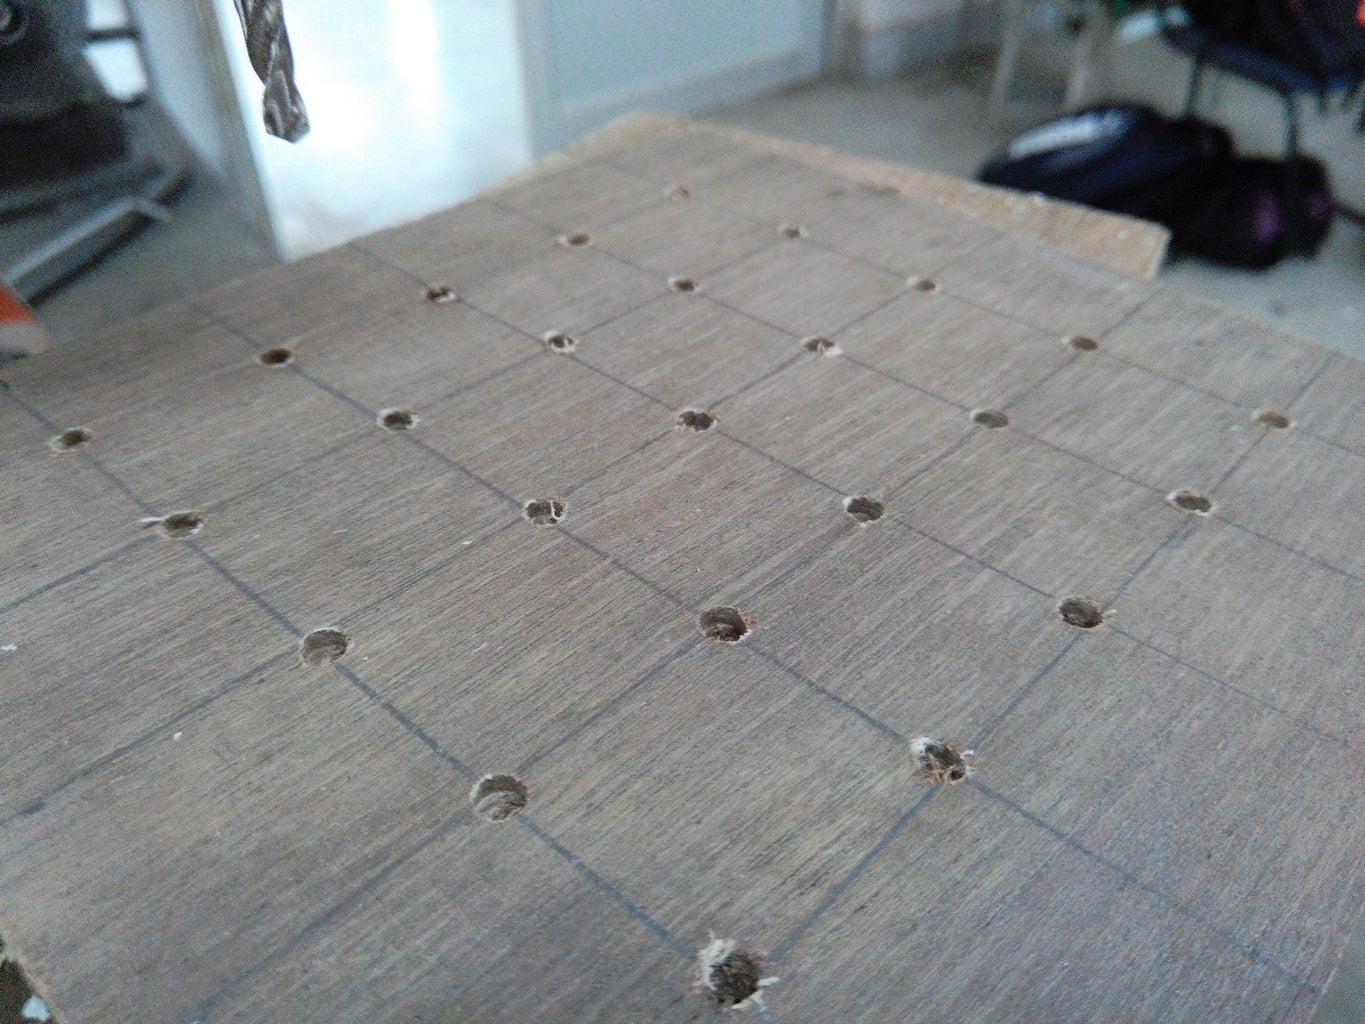 3. Making Holes on the Cut Out Square Pieces